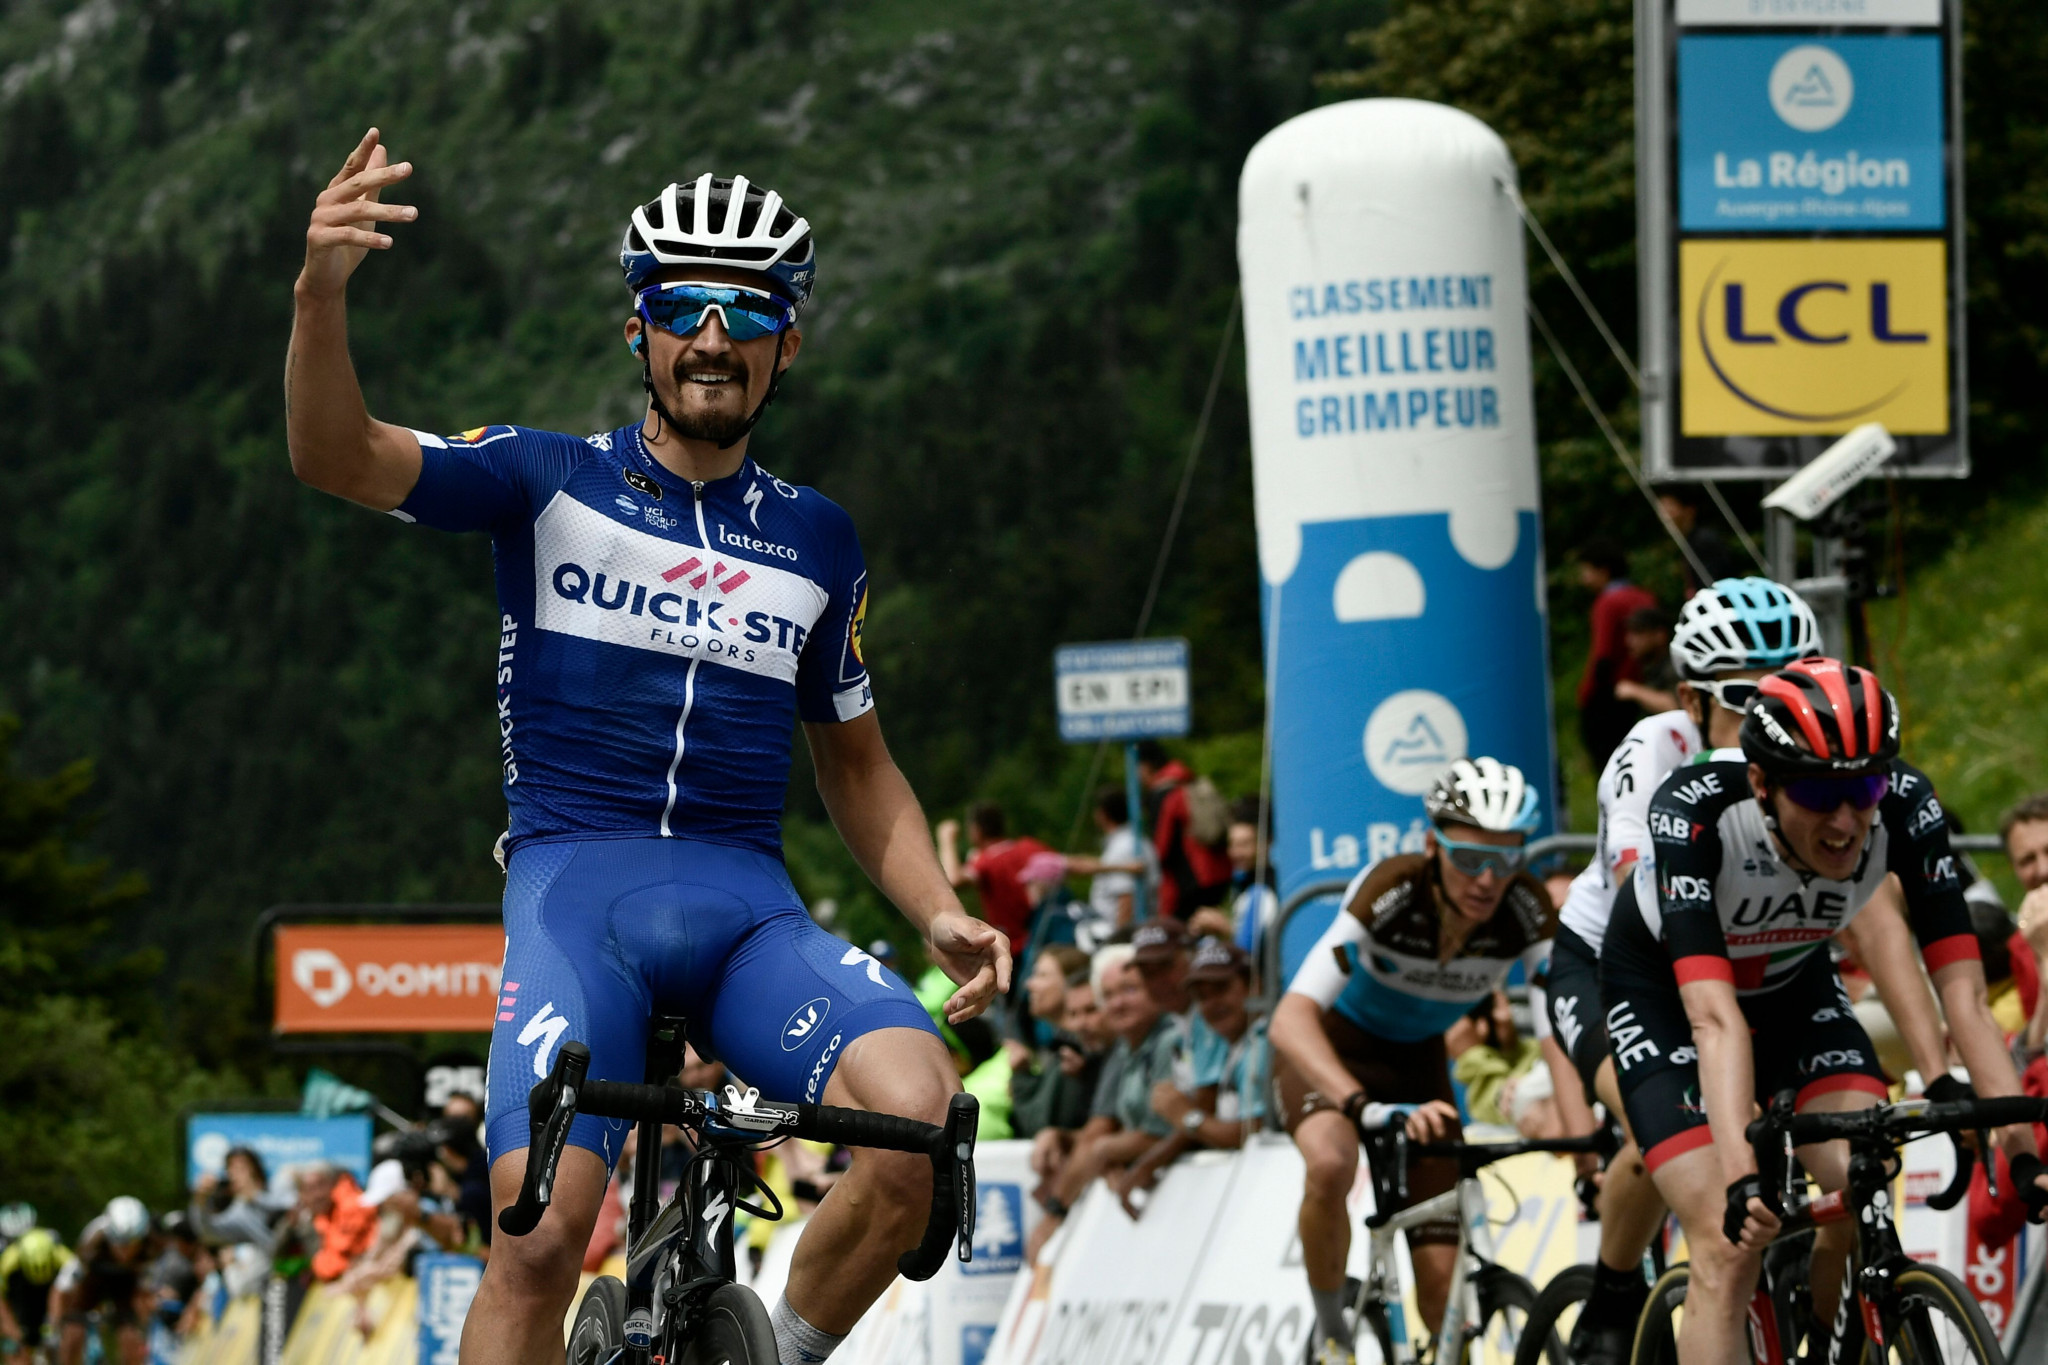 Alaphilippe wins first mountain stage of Critérium du Dauphiné